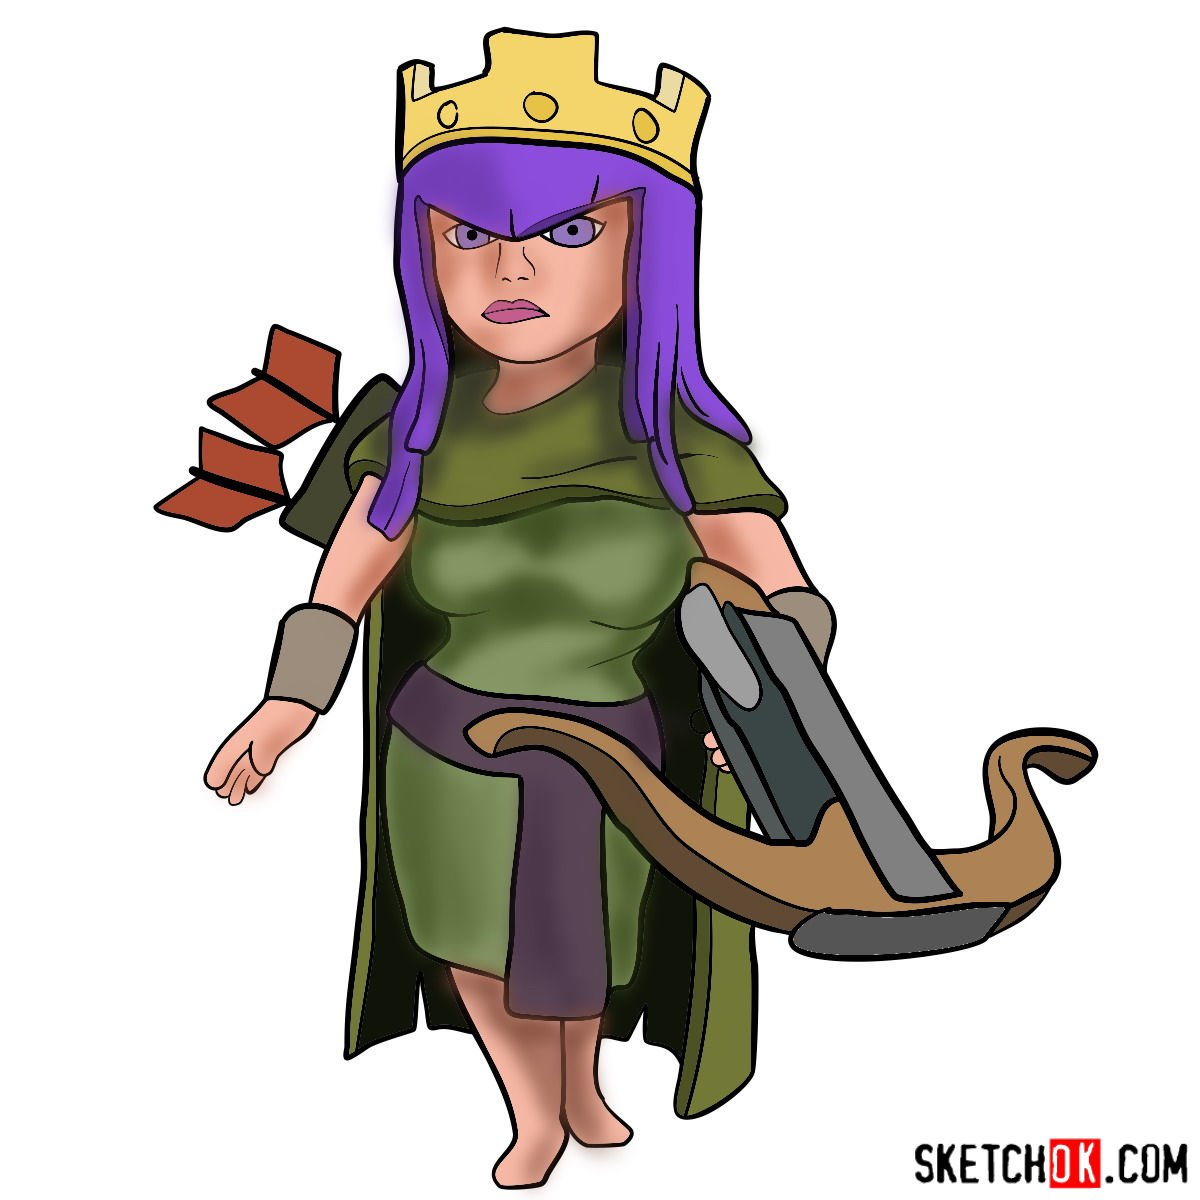 How to draw Archer Queen from Clash of Clans game